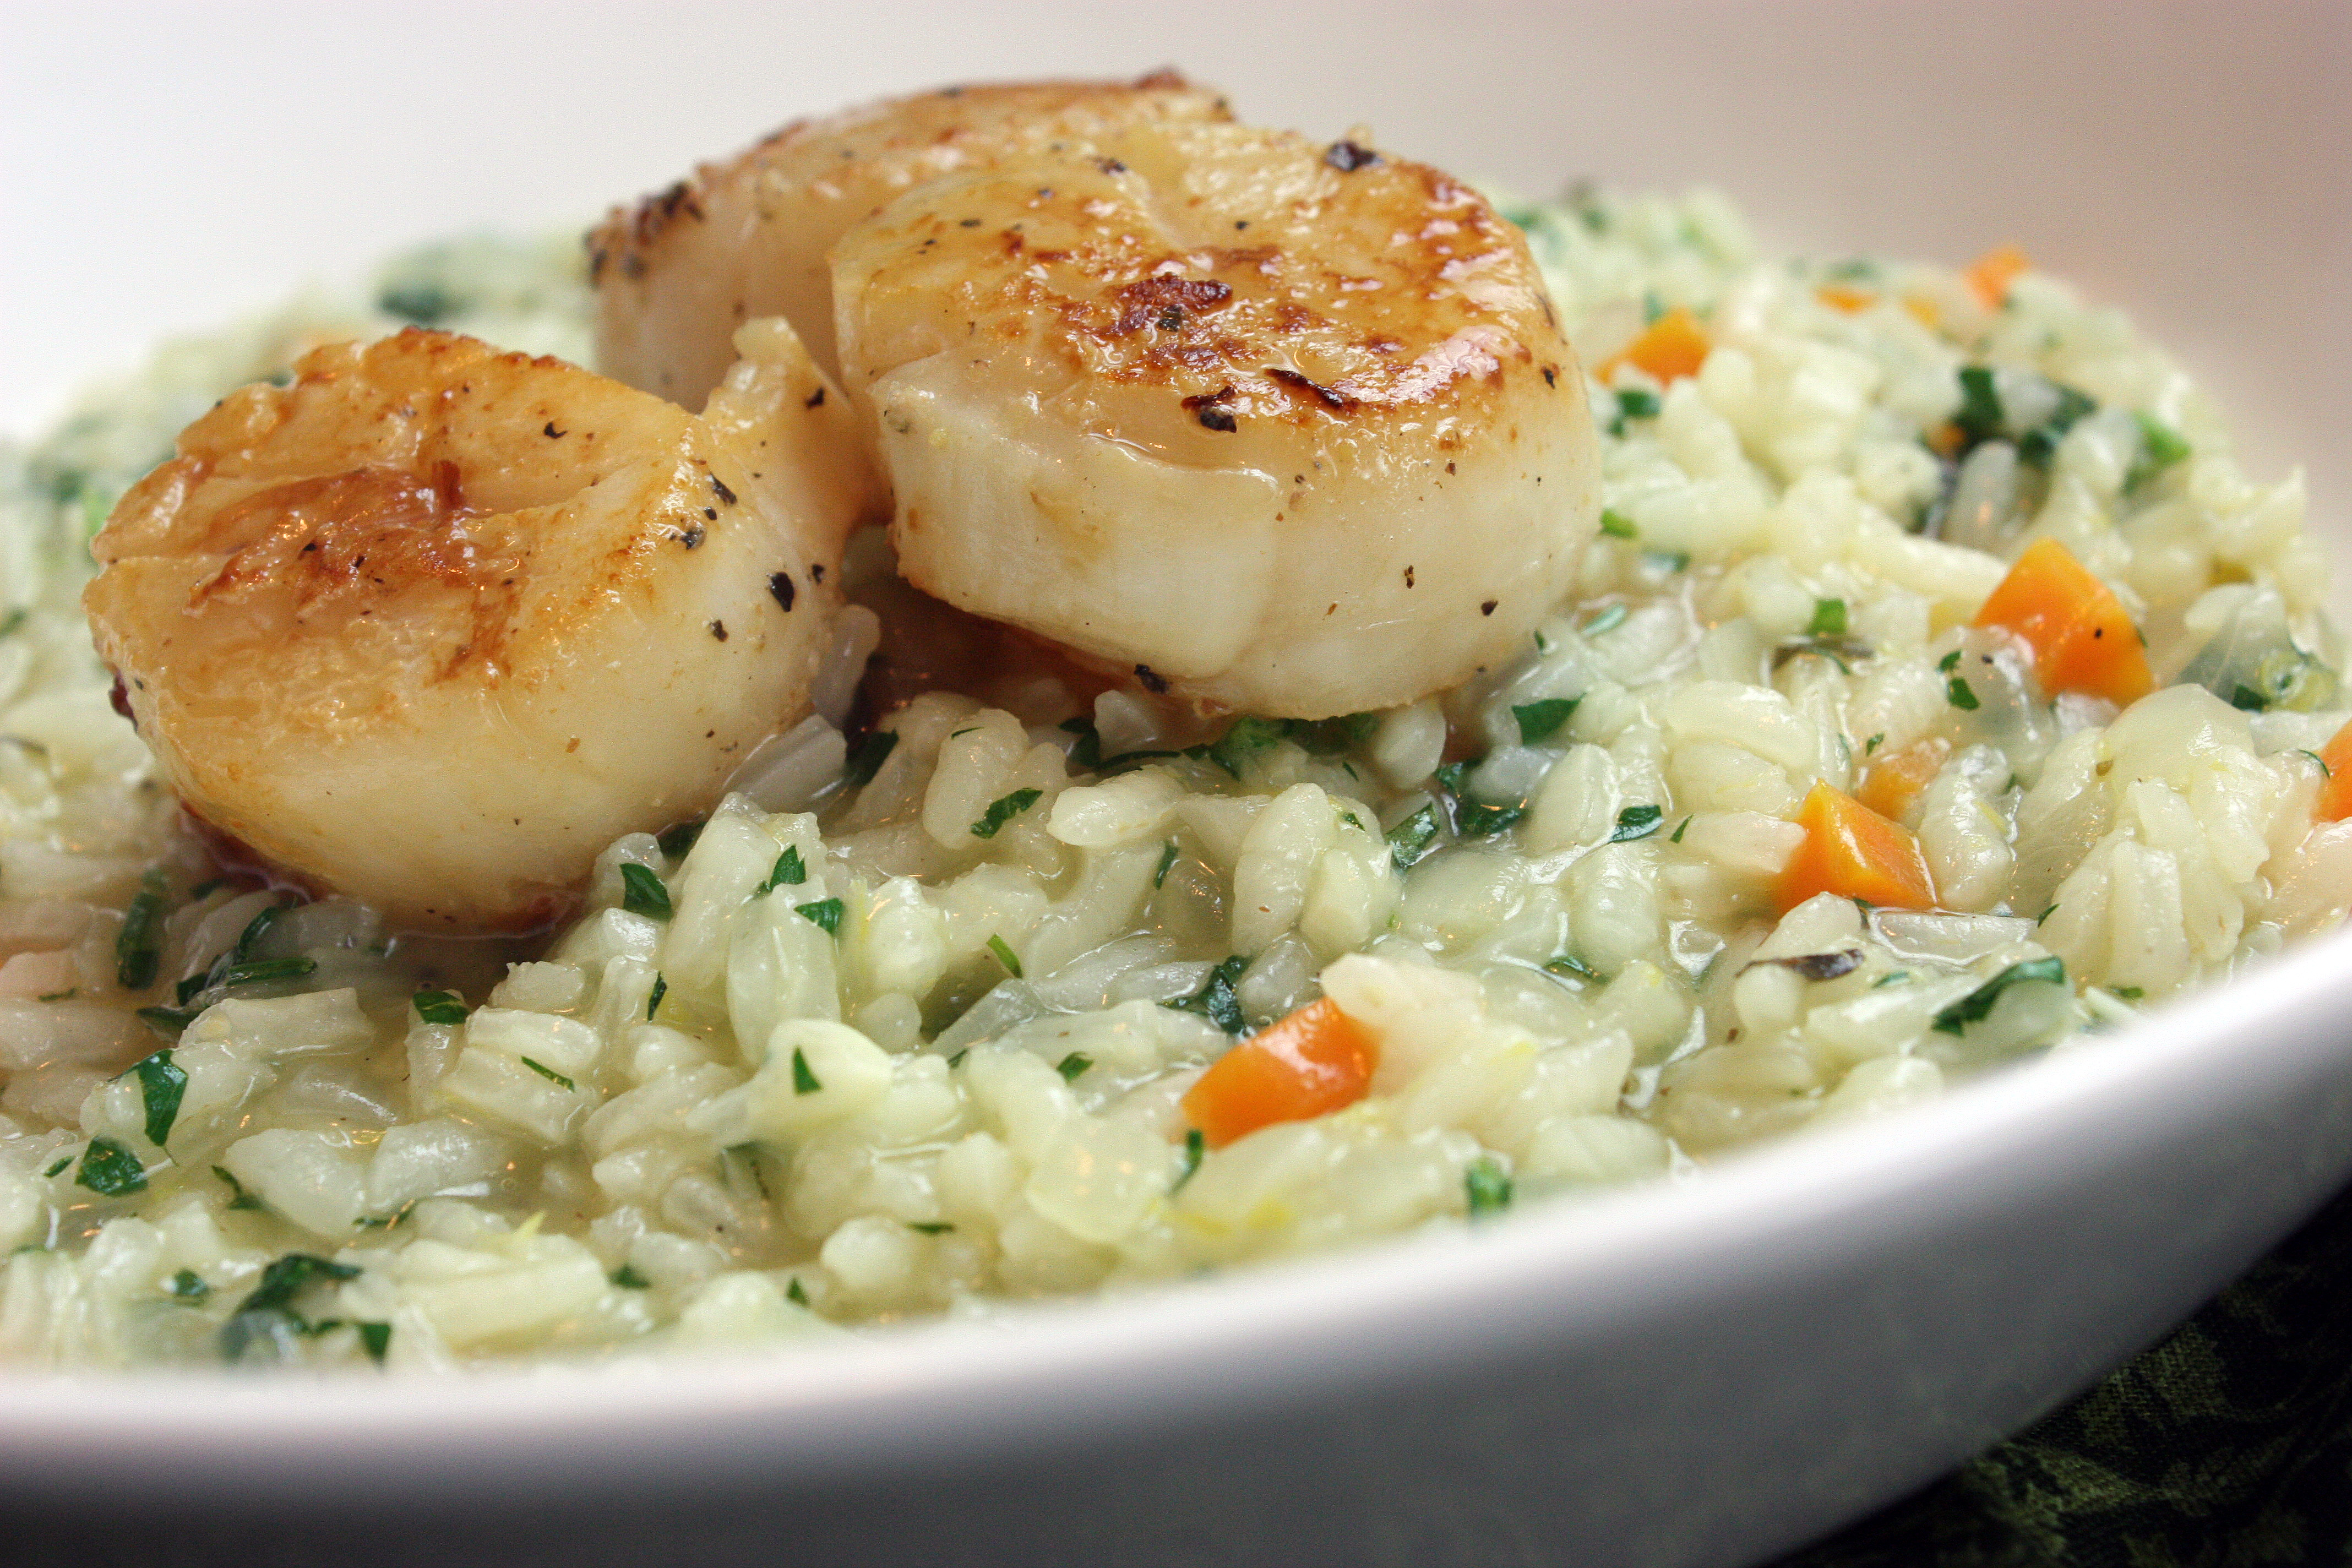 Seared Sea Scallops with Lemon Herb Risotto